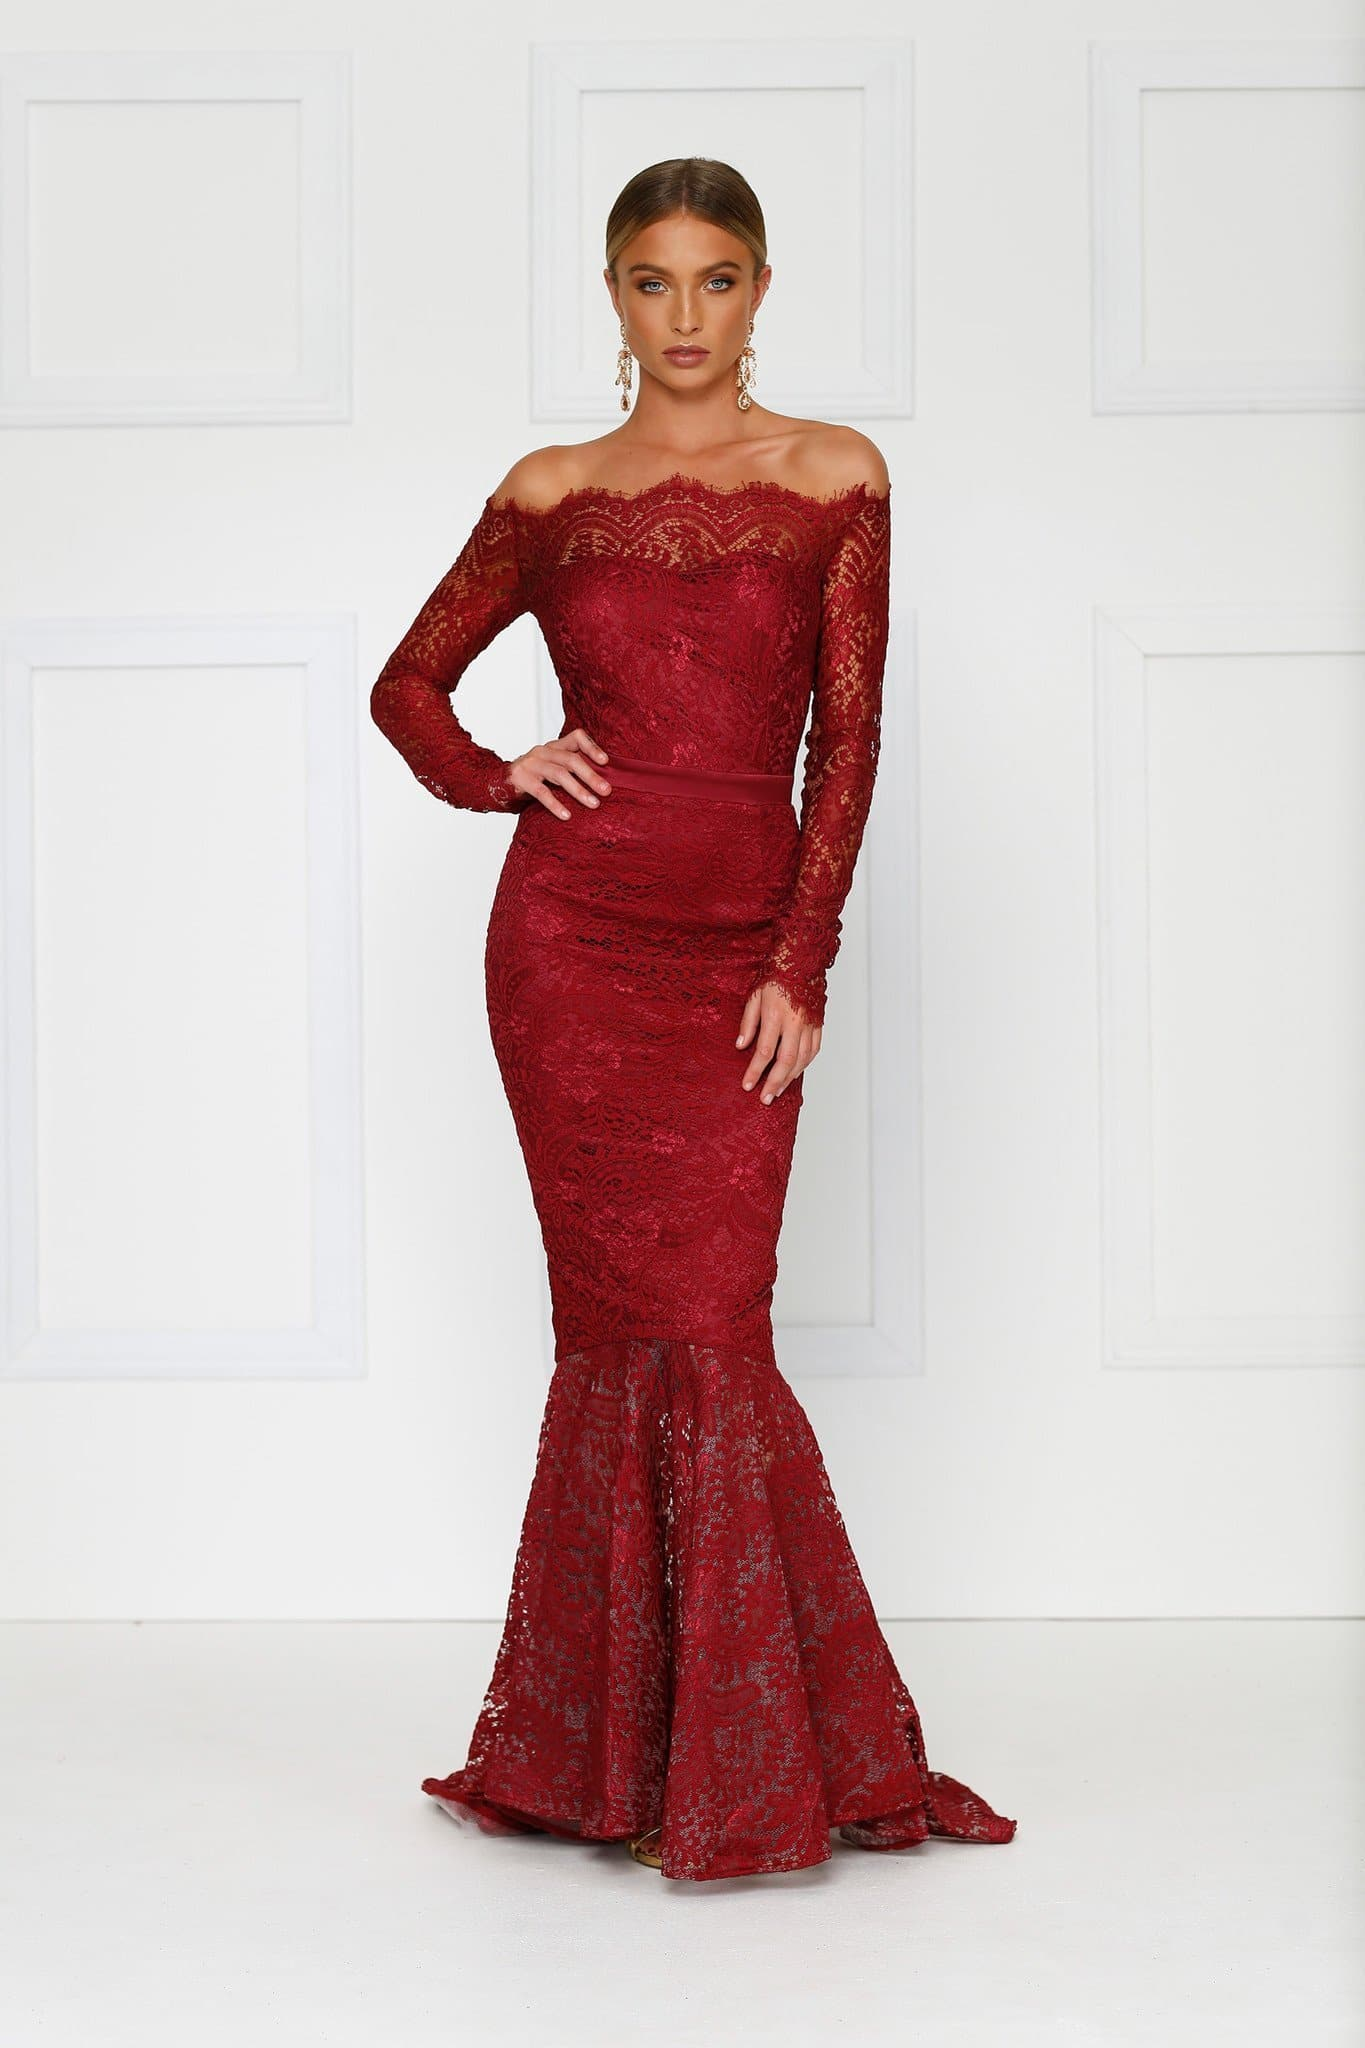 Kamali Lace Gown - Burgundy Evening Dress with Center Back Zipper